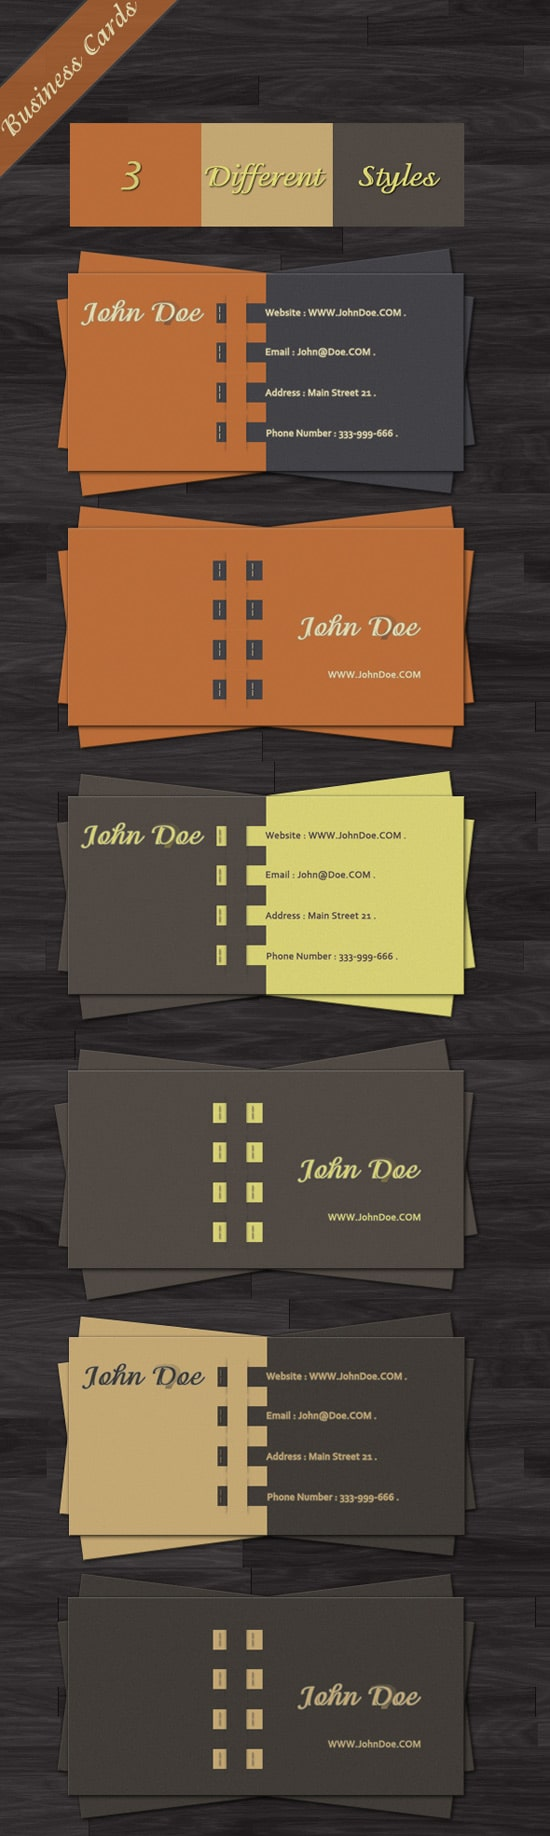 100 free business card templates designrfix business is business free psd vector business card flashek Images